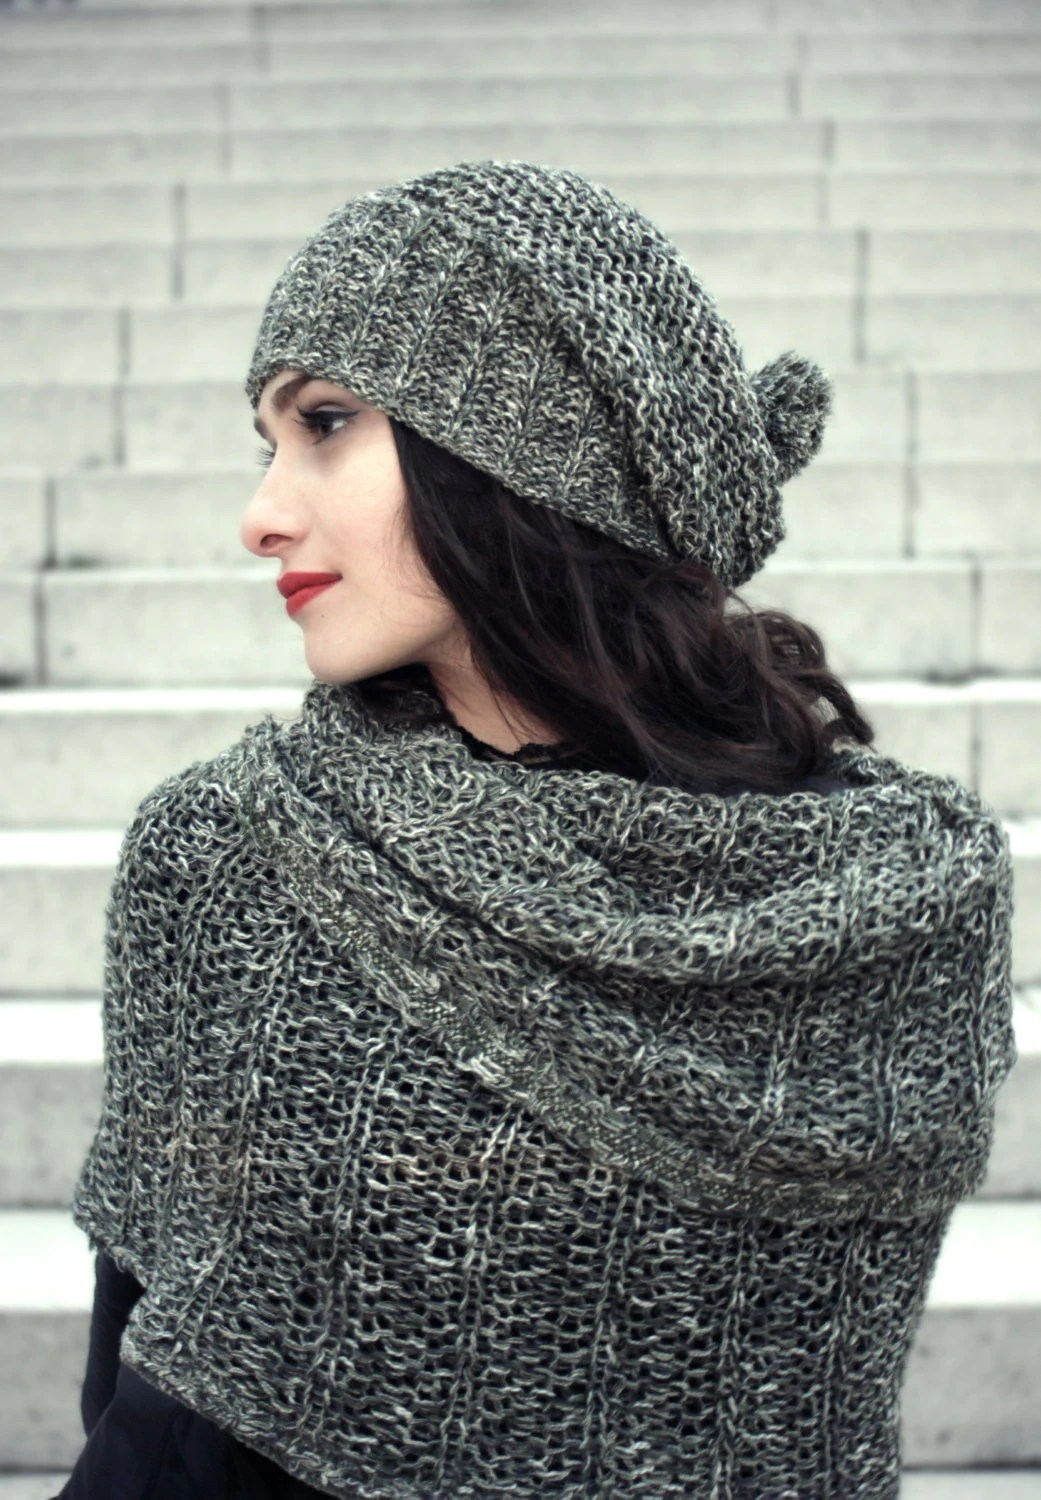 knit slouchy hat / november trend / woman winter hat / grey green / olive / warm hat / womens knit hats - BonniesCinematheque